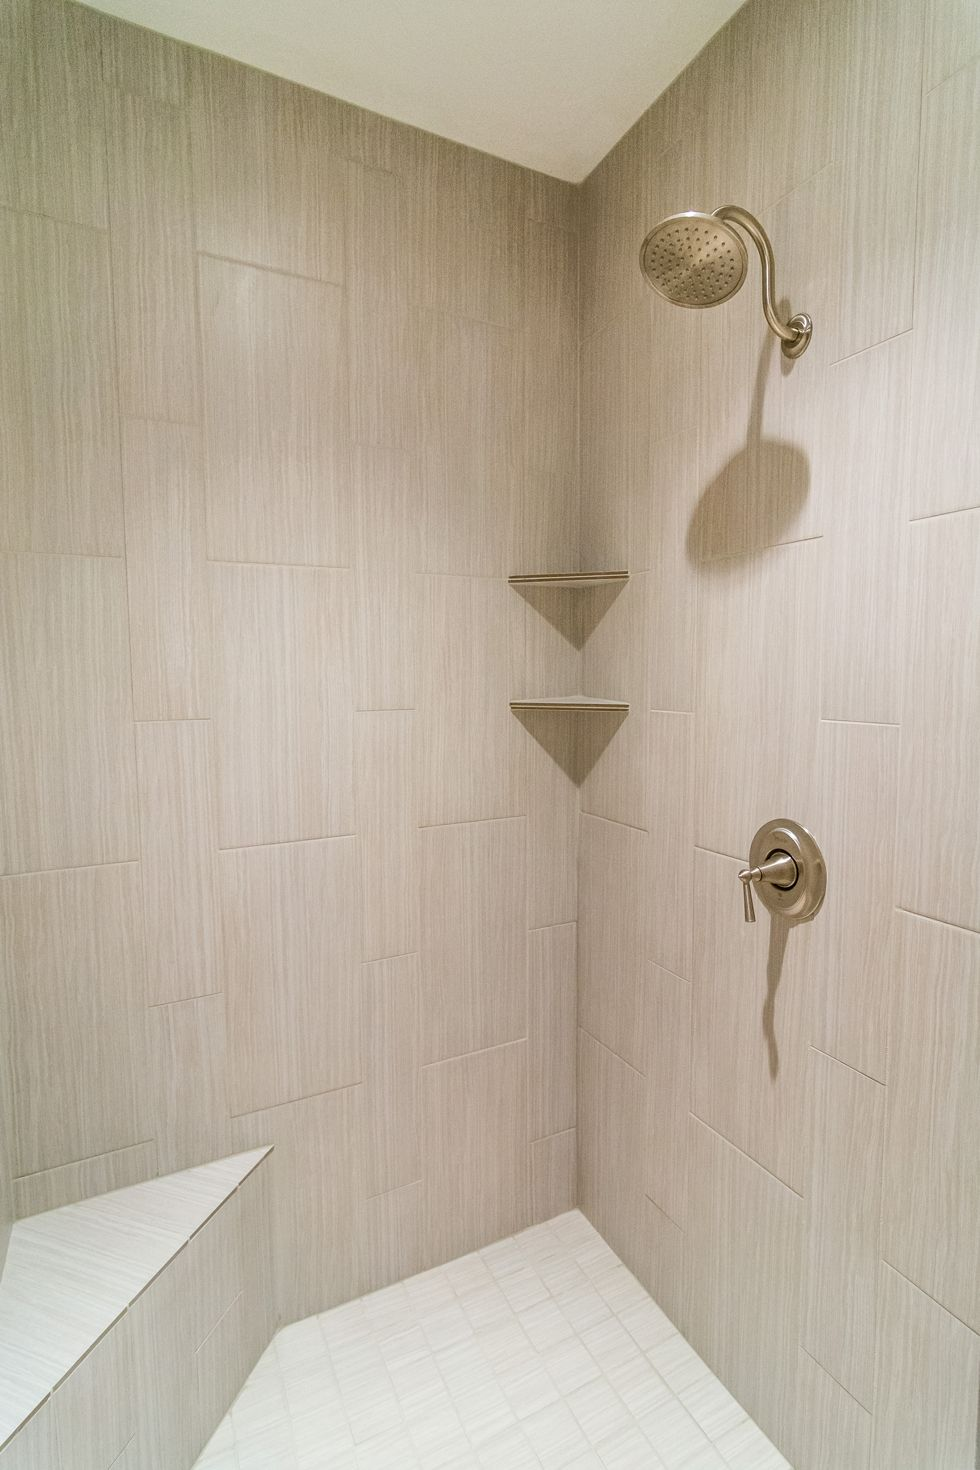 #shower #walkinshower #decor #interiordesign #design #tile #stgeorge #newhome #encehomes